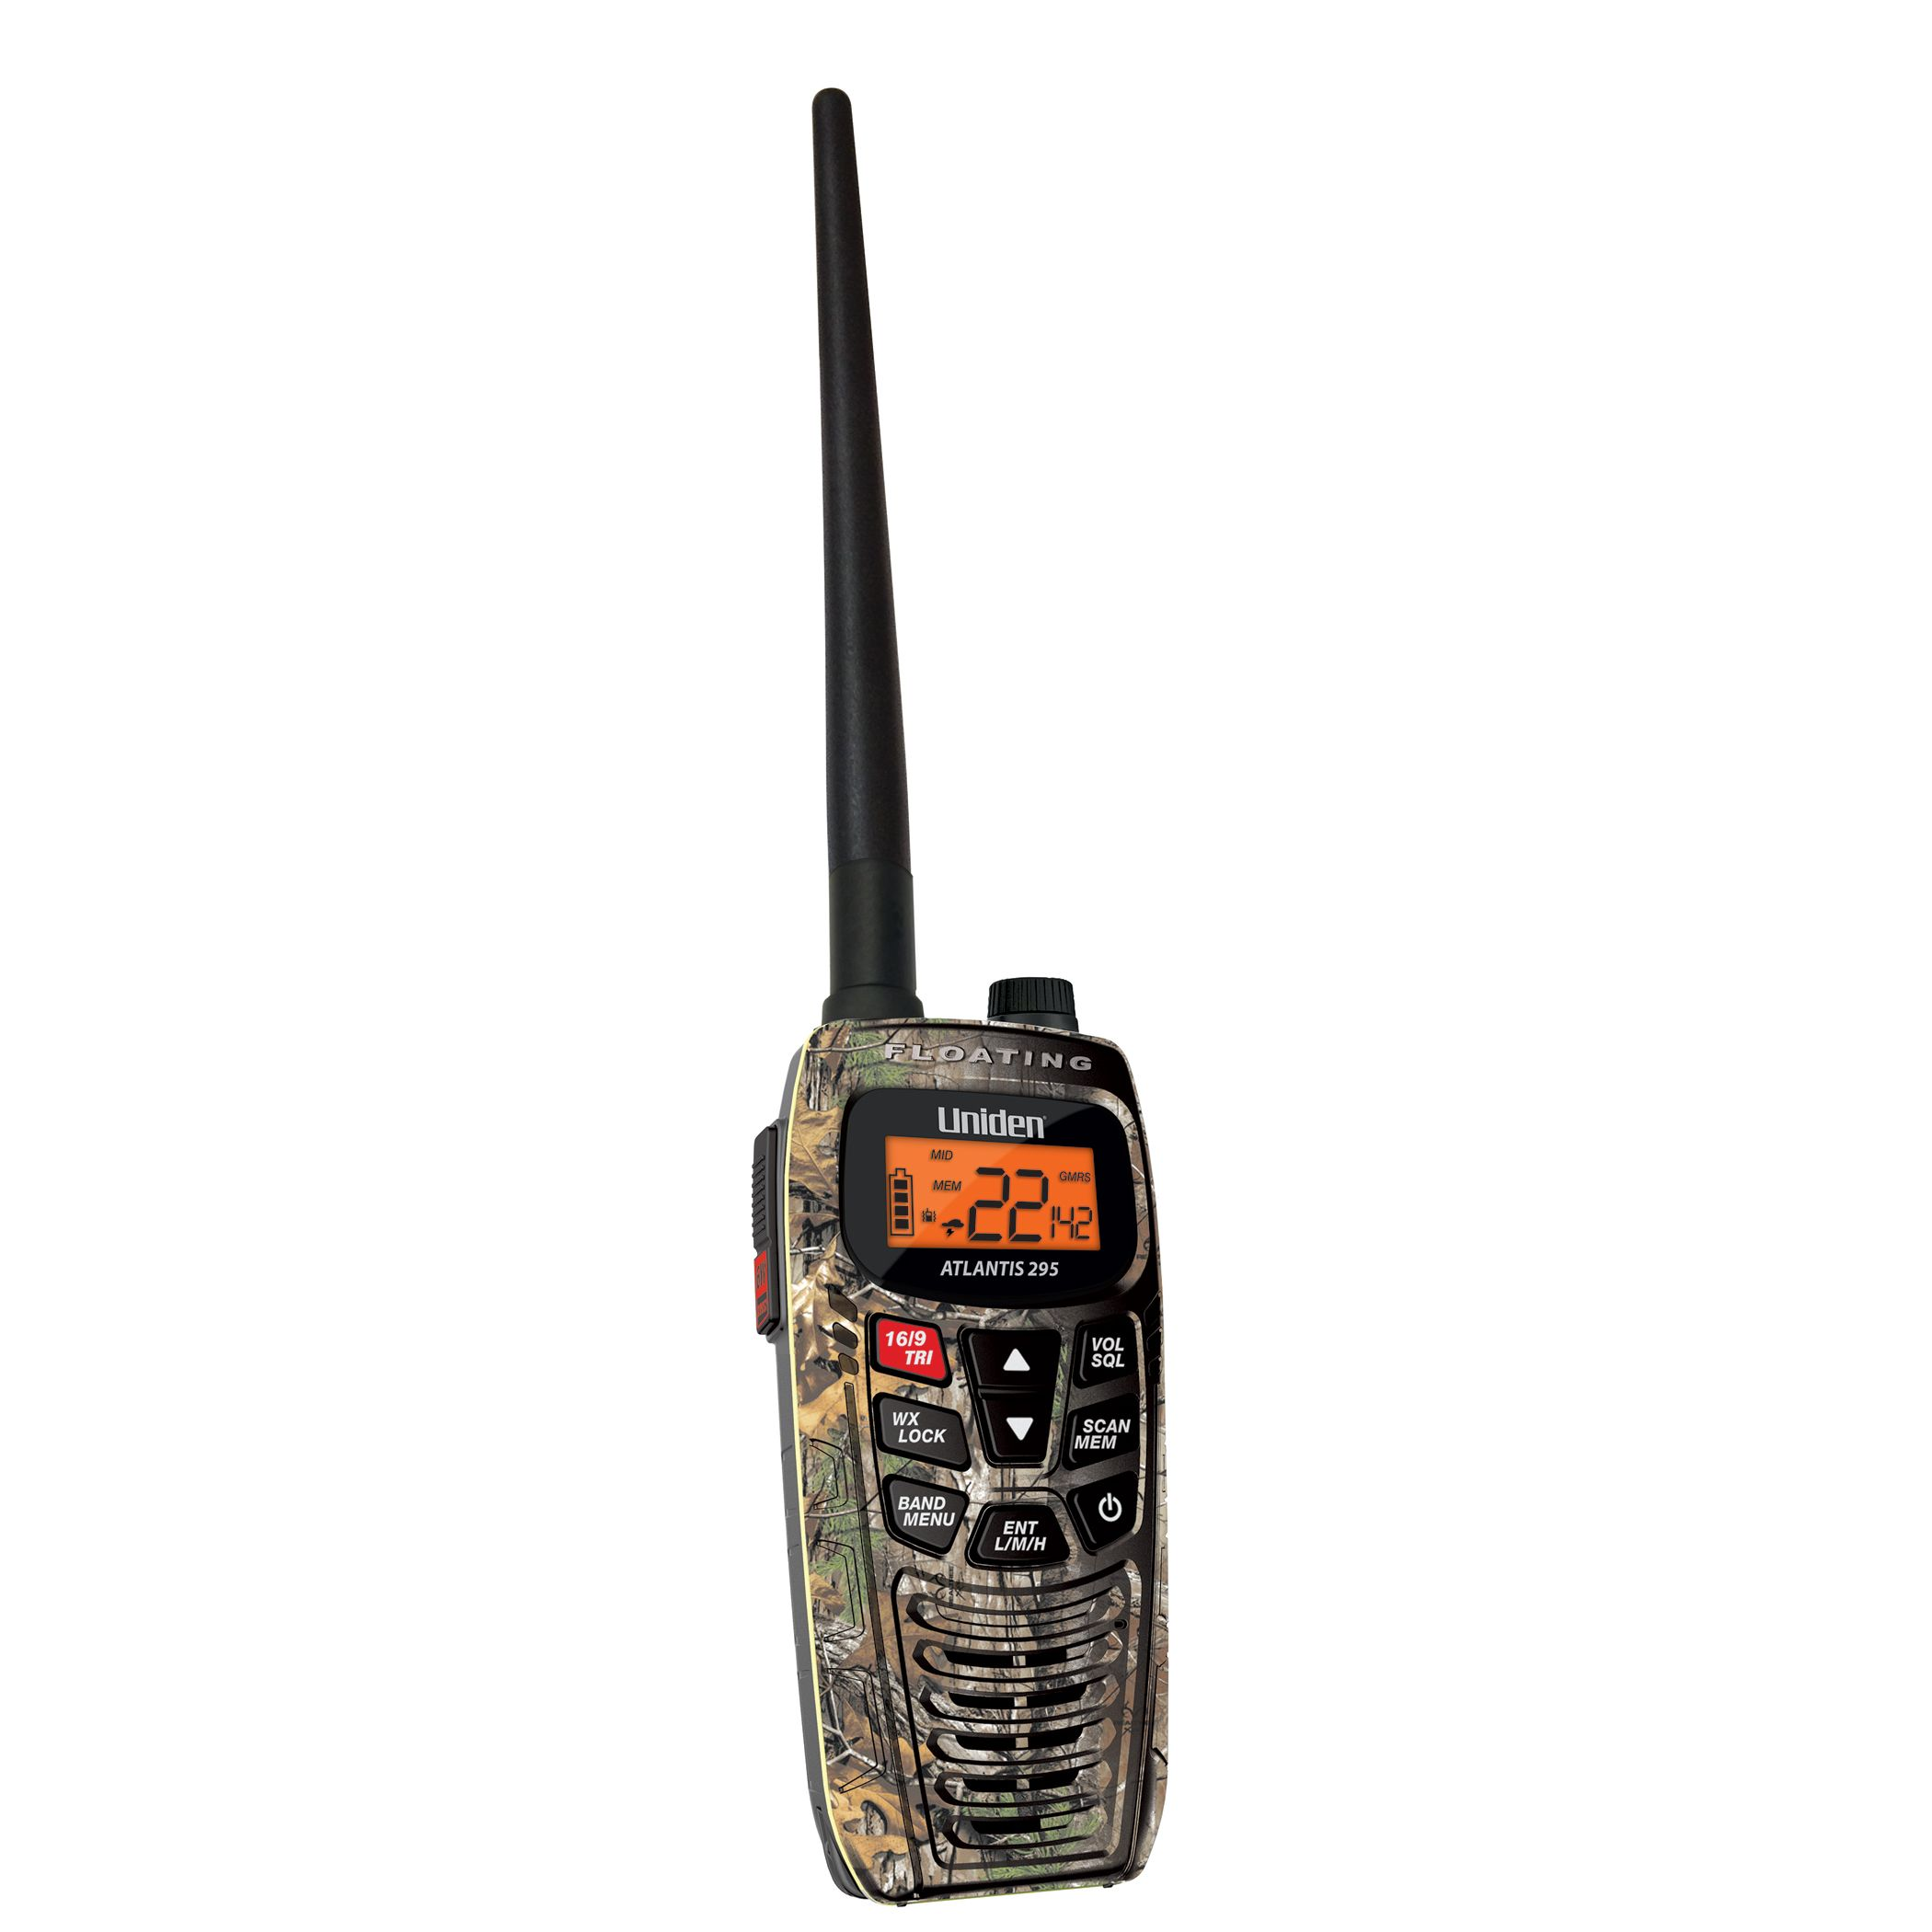 ATLANTIS295 - Uniden Dual Band VHF/GMRS Radio With Call Alert Vibrate Camo